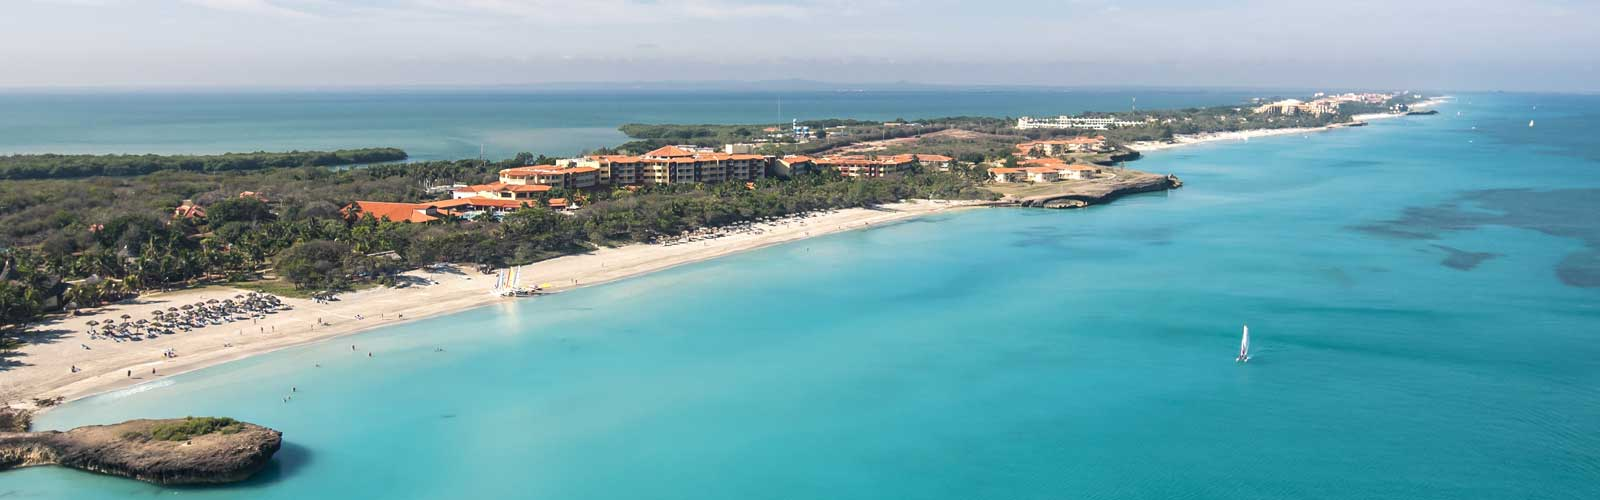 Varadero Tours And Attractions